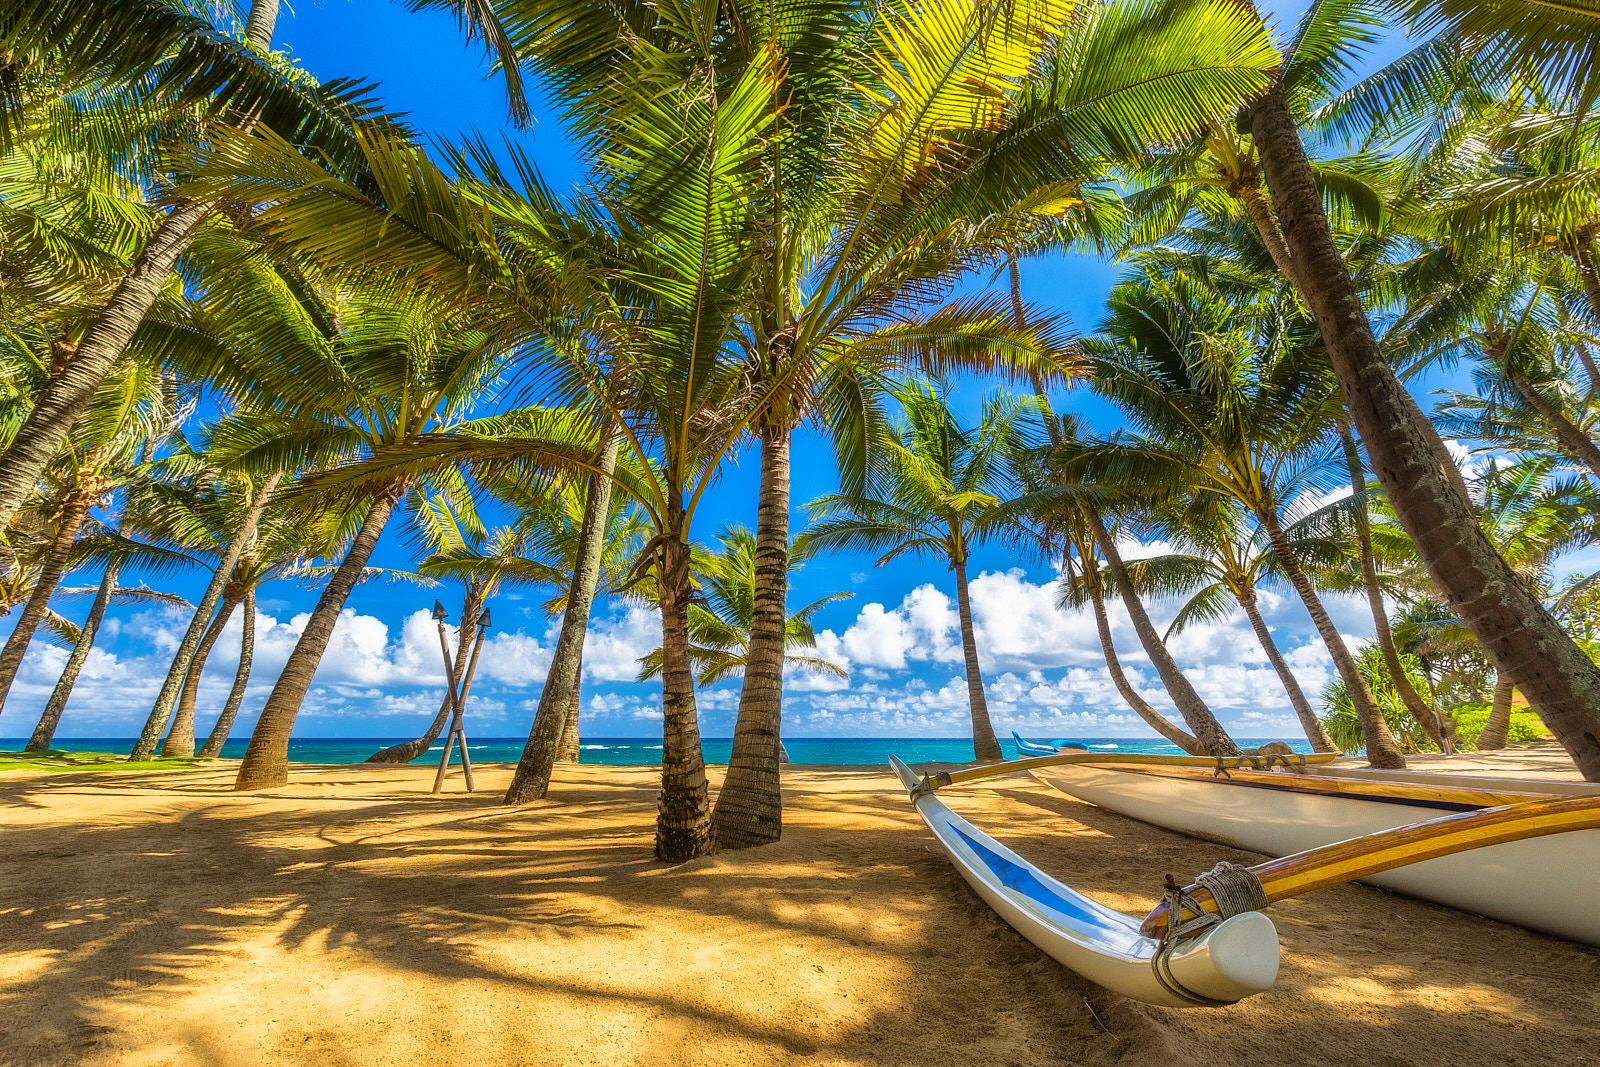 a classic blue sky view of the coconut palm tree cove at Mama's Fish House looking out at Kuau Cove on the island of Maui with an outrigger in the foreground